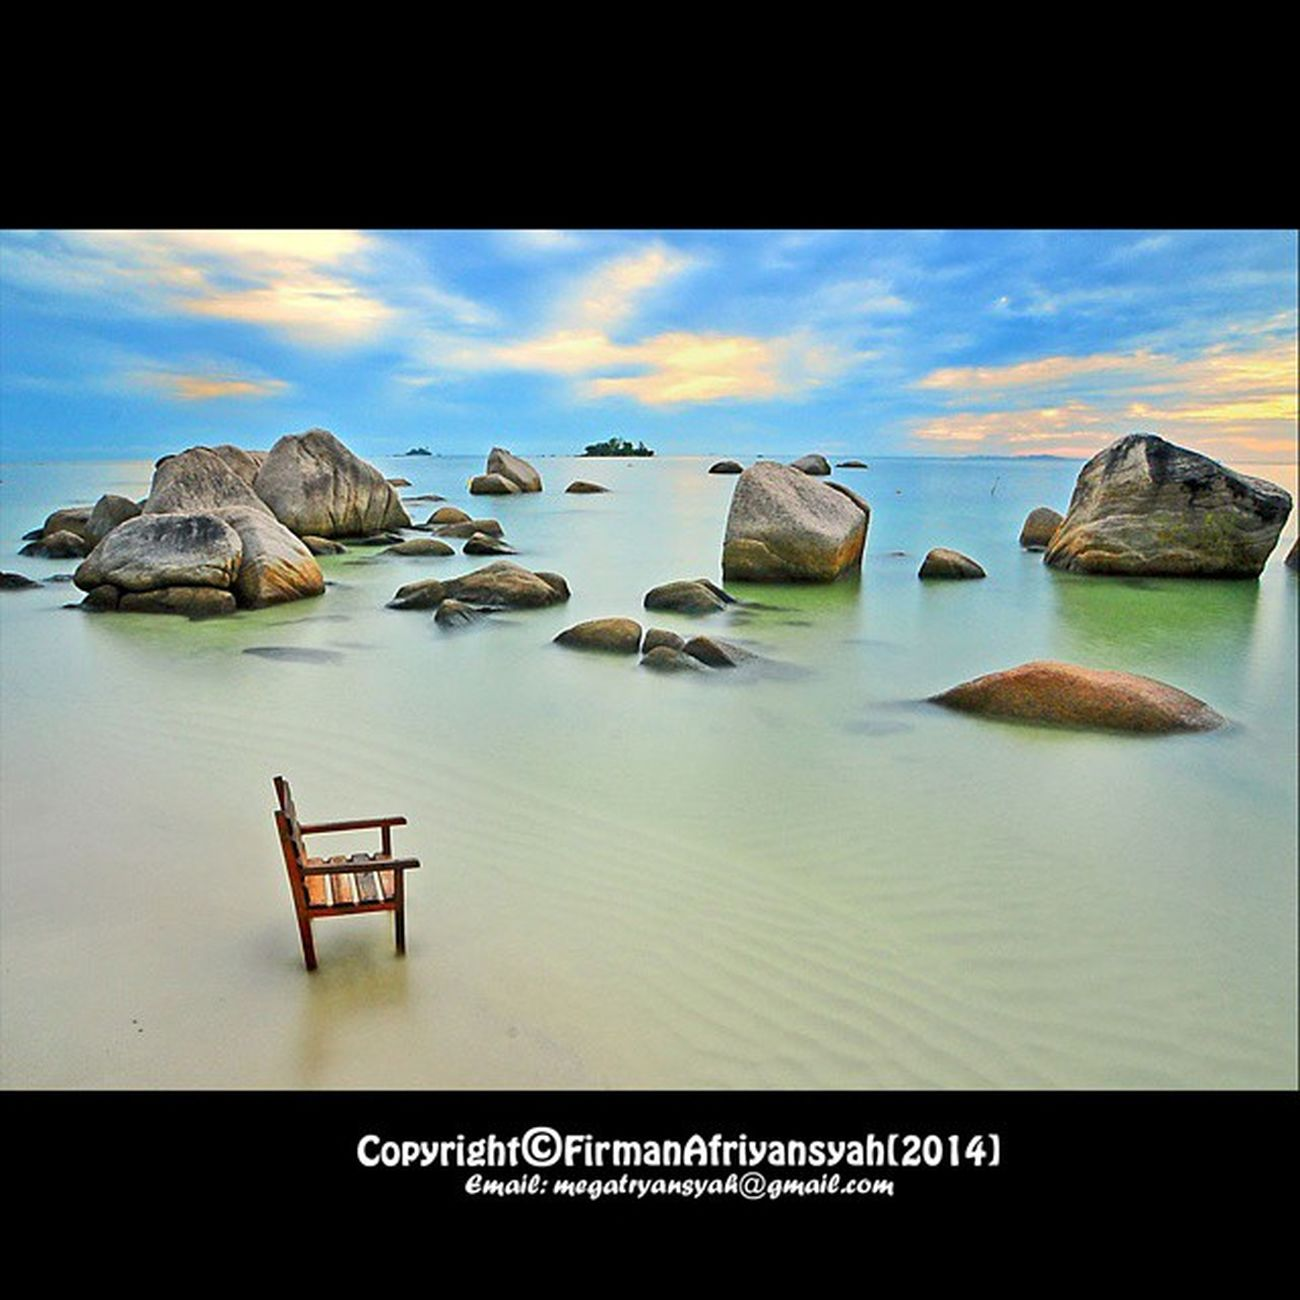 Keindahan alam dipagi hari kala mentari terbit di ufuk timur , riak ombak yang tenang menyejukkan hati, pantai trikora Bintan Cabana Resort KabupatenBintan Kepulauanriau Provincephotochallenge Publish di FOTOKITA sebagai salah-satu foto terbaik tahun 2014 : http://fotokita.net/blog/2014/12/fotokita-best-photo-of-the-year-2014/ Wonderfullkepri Wonderfulindonesia IndonesiaOnly Indonesia_photography Ig_nesia Photooftheday Thephotosociety SeaScapePhotography Indonesianaturephotography Inap Traditional Helloparadiset7 Bestpartofindonesia Viewerscorner Officialtrans7